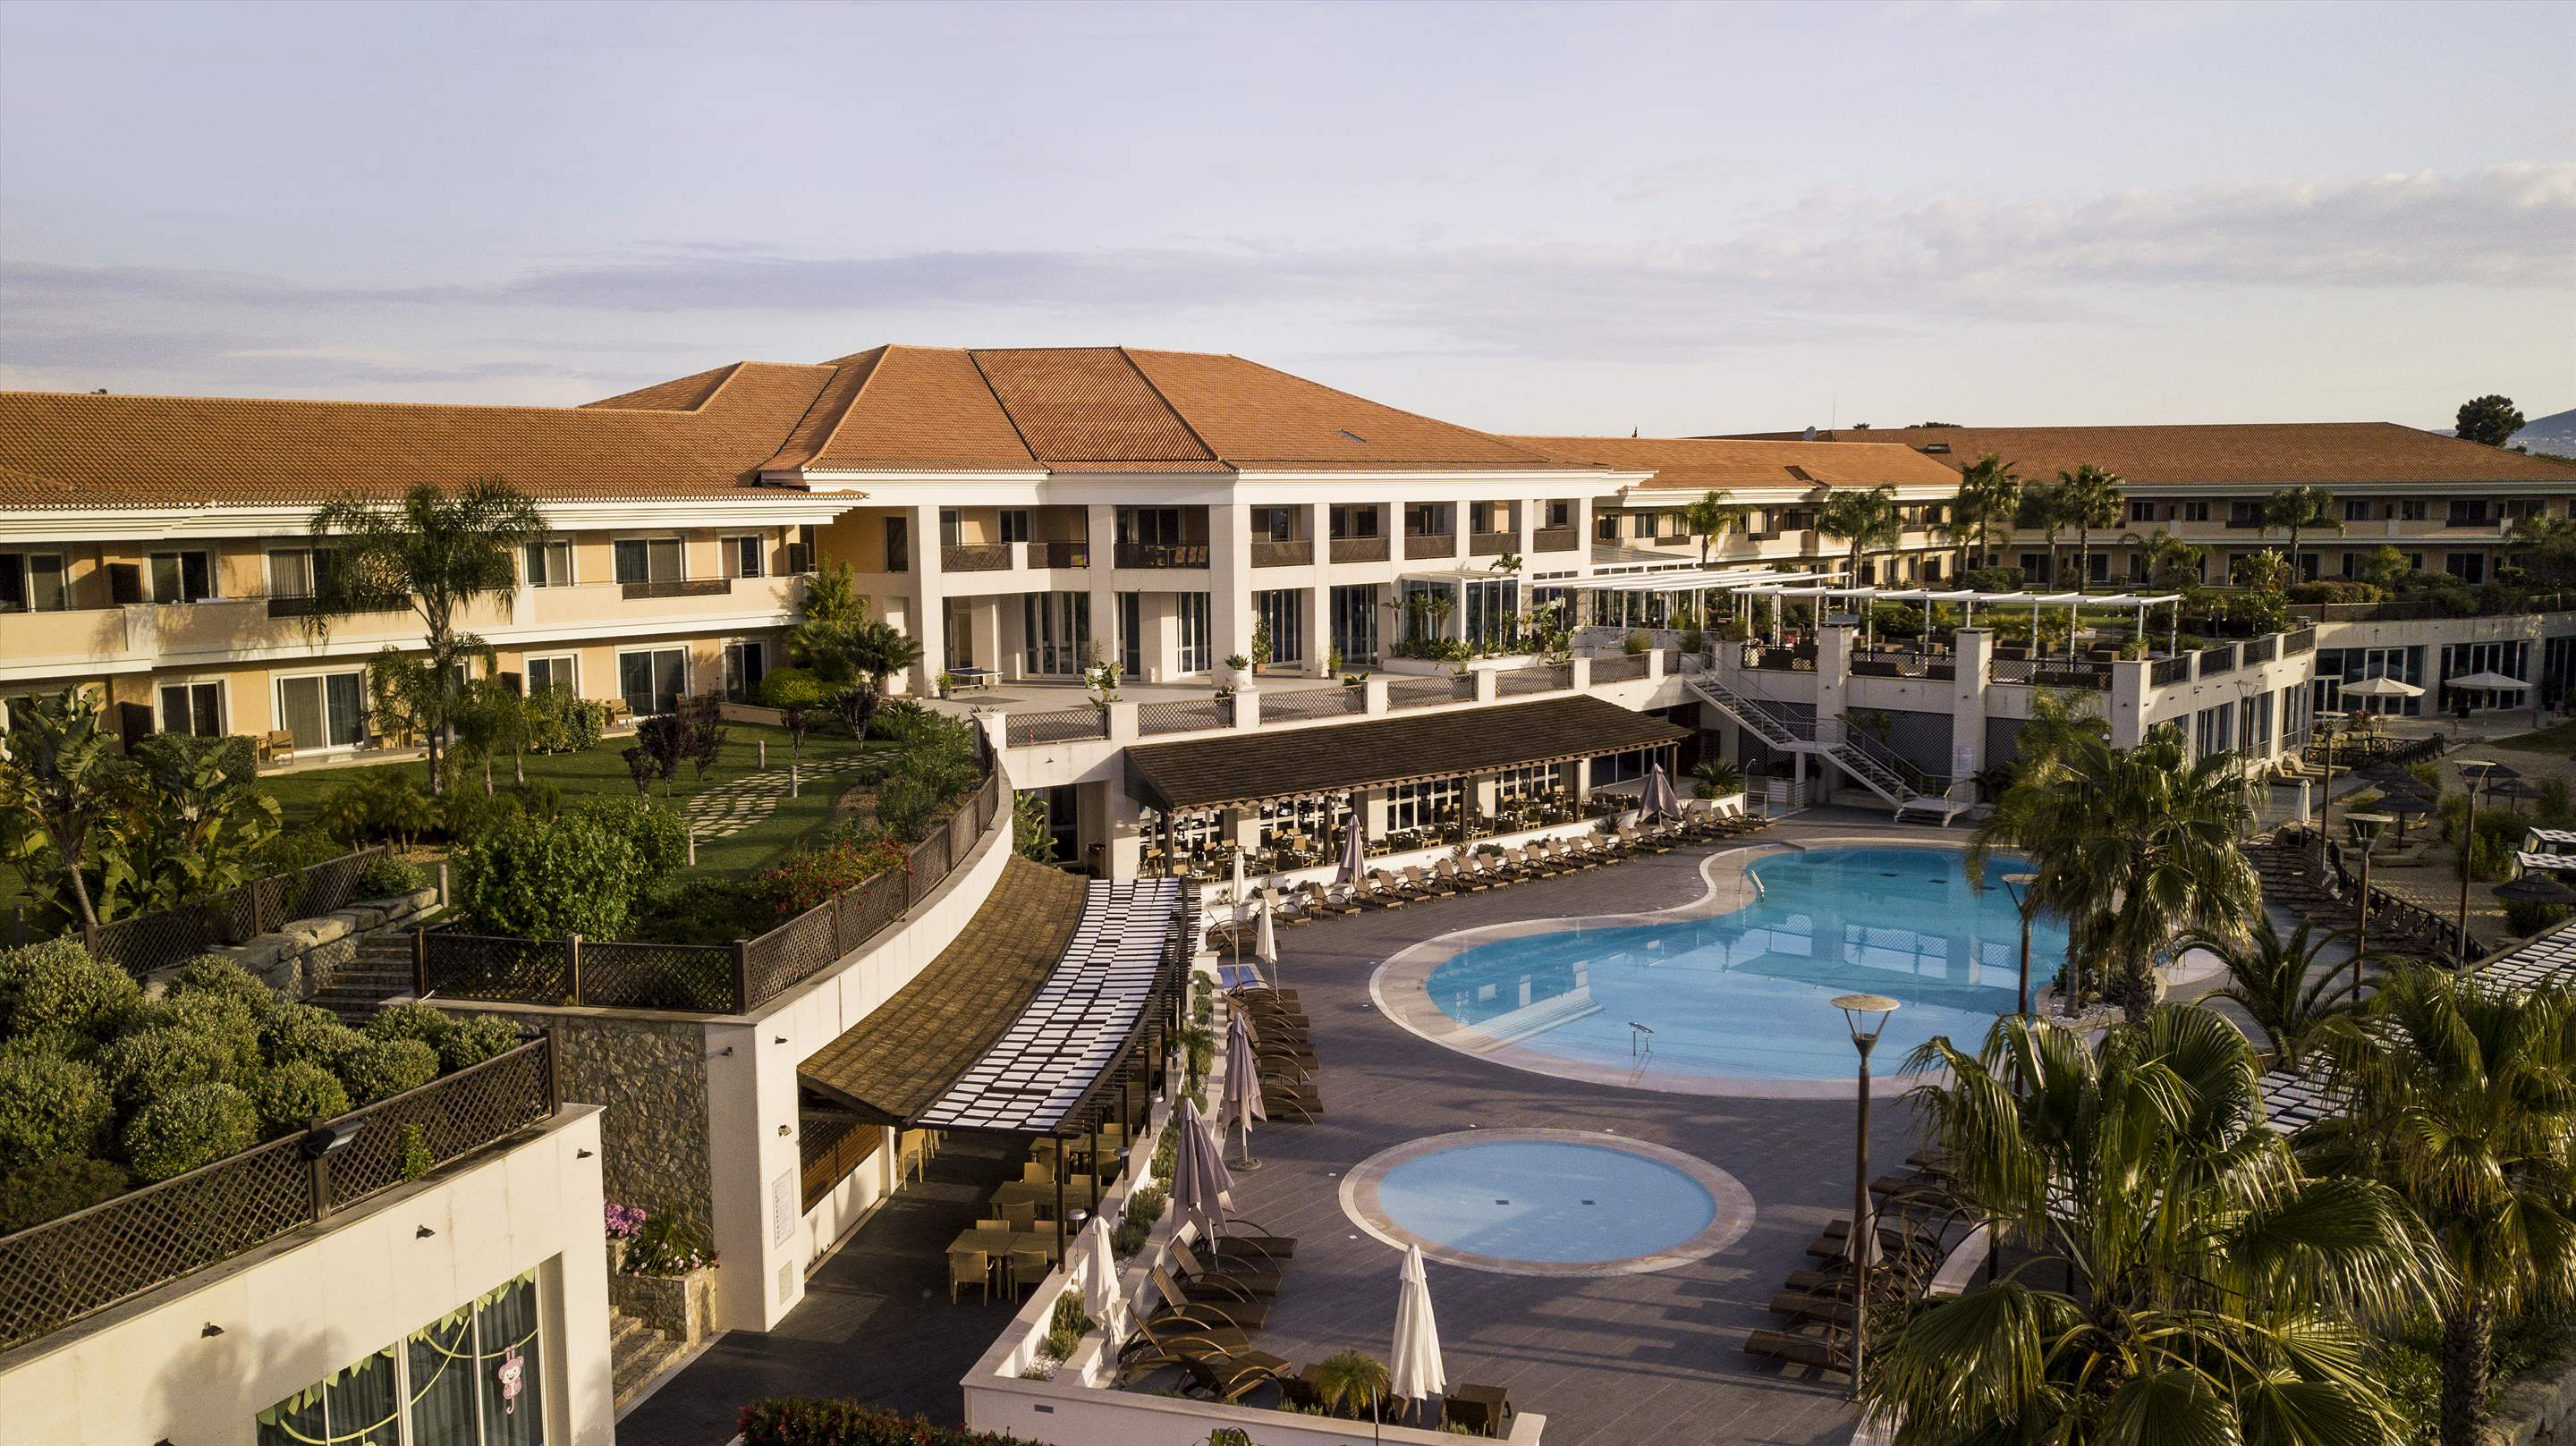 Wyndham Grand Algarve 2 Bedroom, Deluxe Family Suite, Pool Side, Room Only, 2 bedroom apartment in Wyndham Grand Algarve, Algarve Photo #32